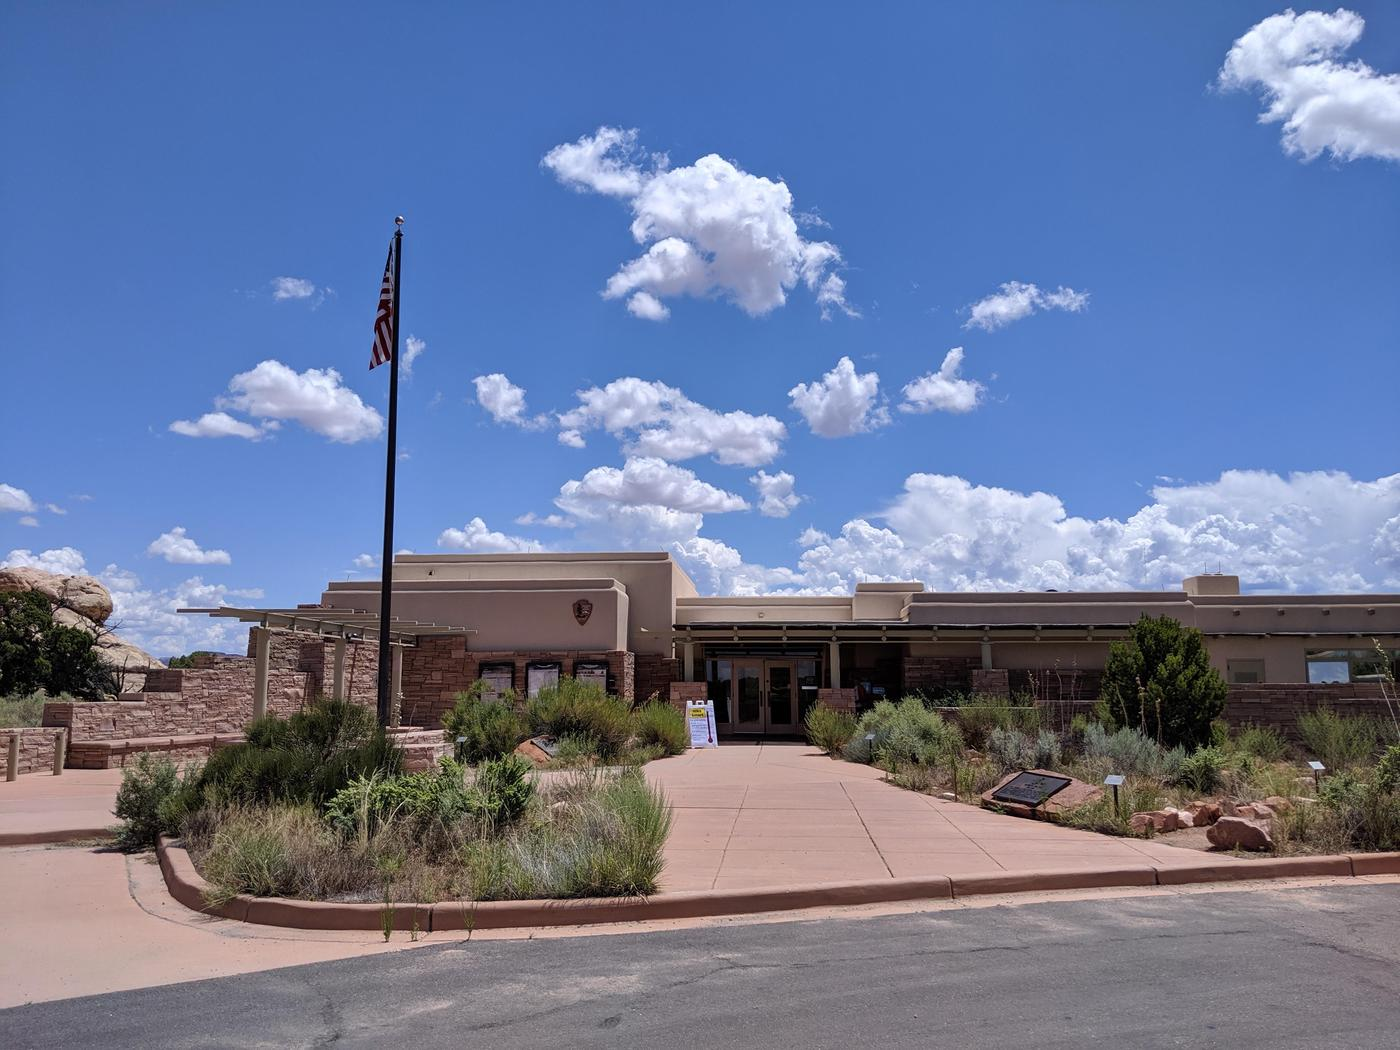 The Needles District Visitor Center